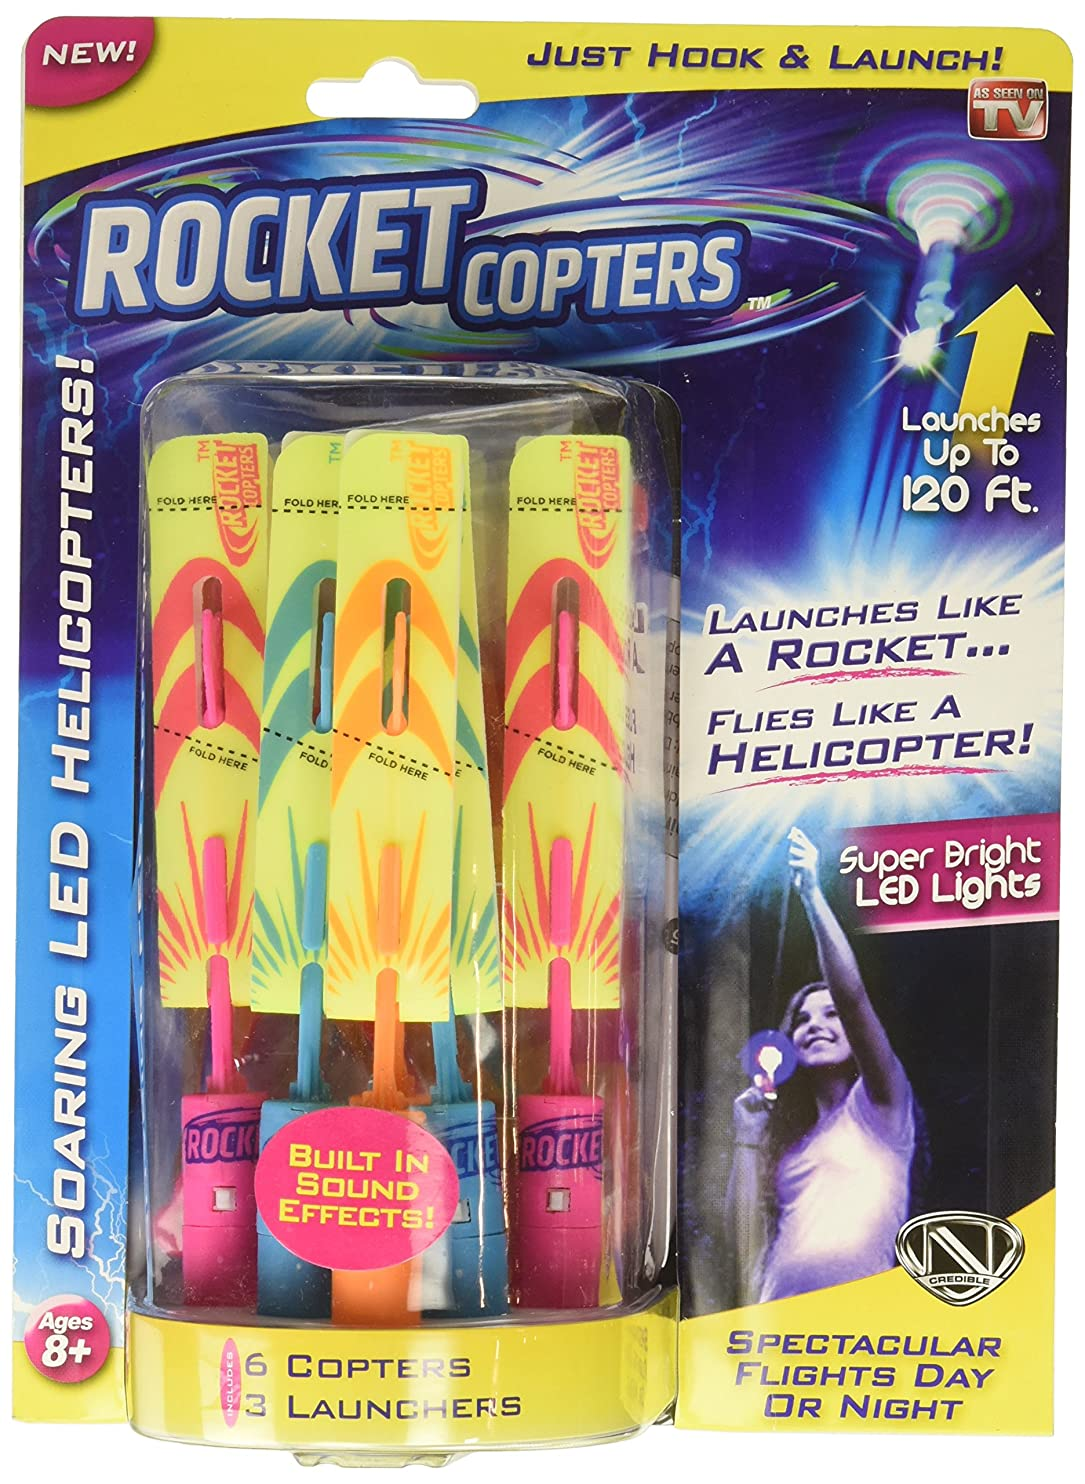 Rocket?Copters?- The Amazing Slingshot LED?Helicopters?- As Seen on TV dbhbntpcnay08